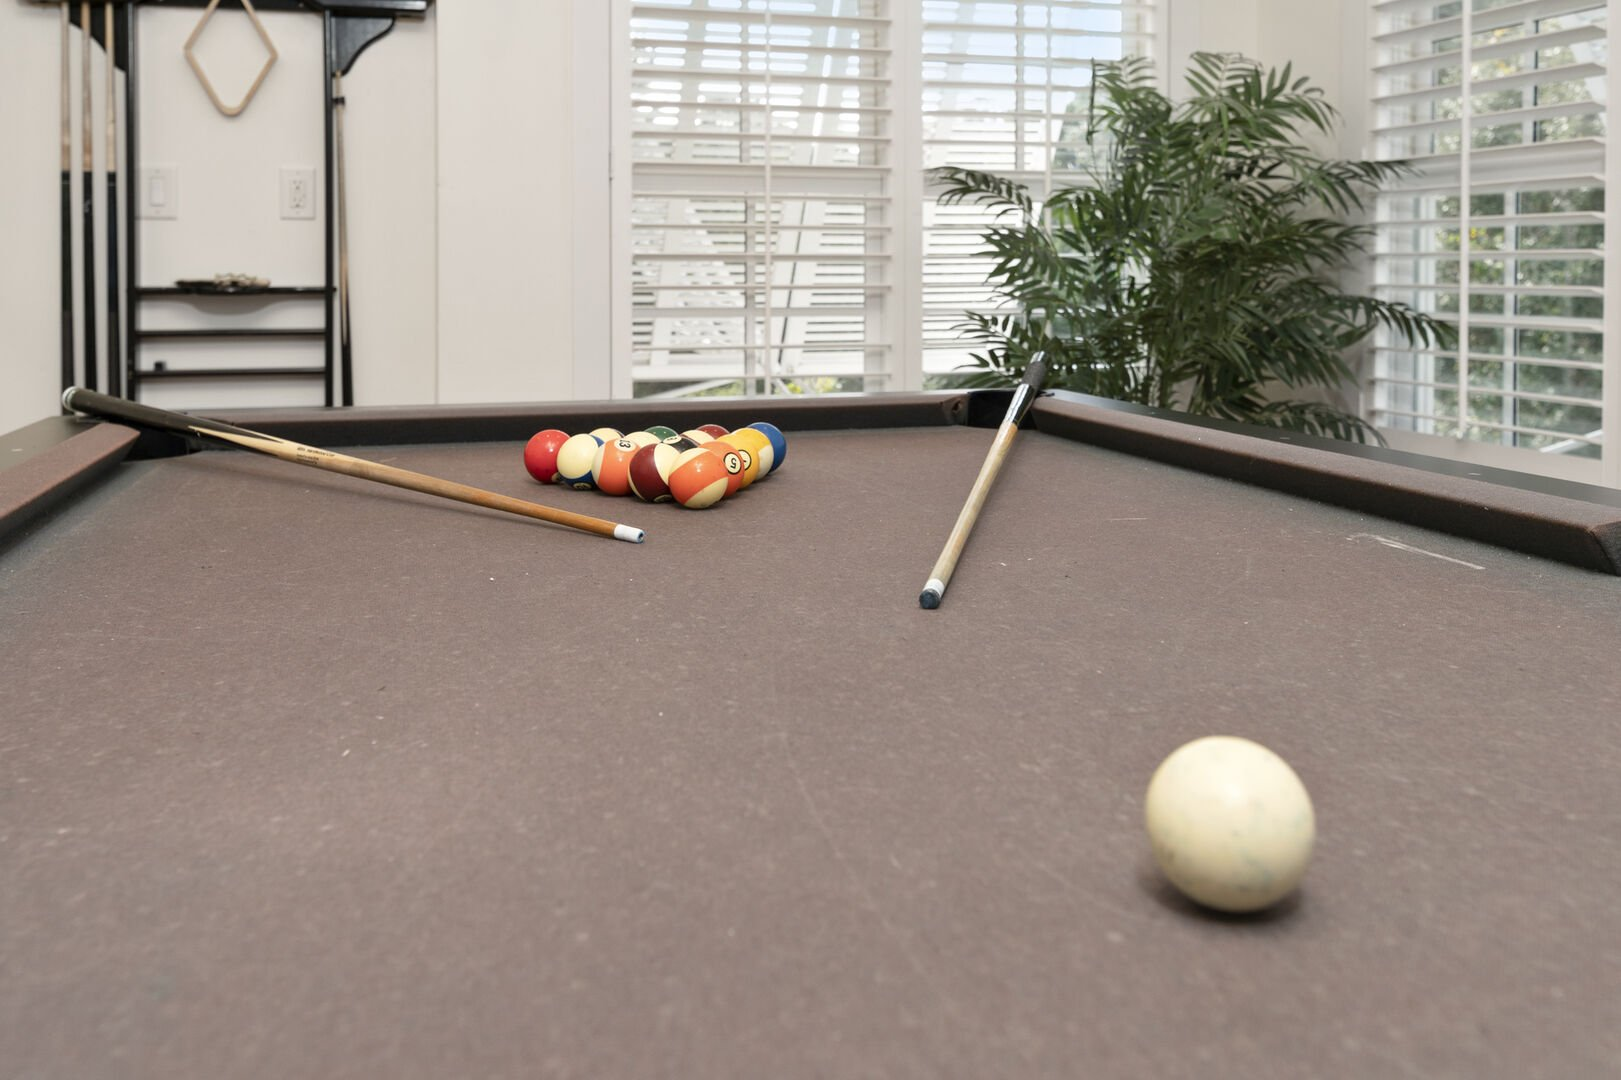 Pool Table in Game Room - Second Floor